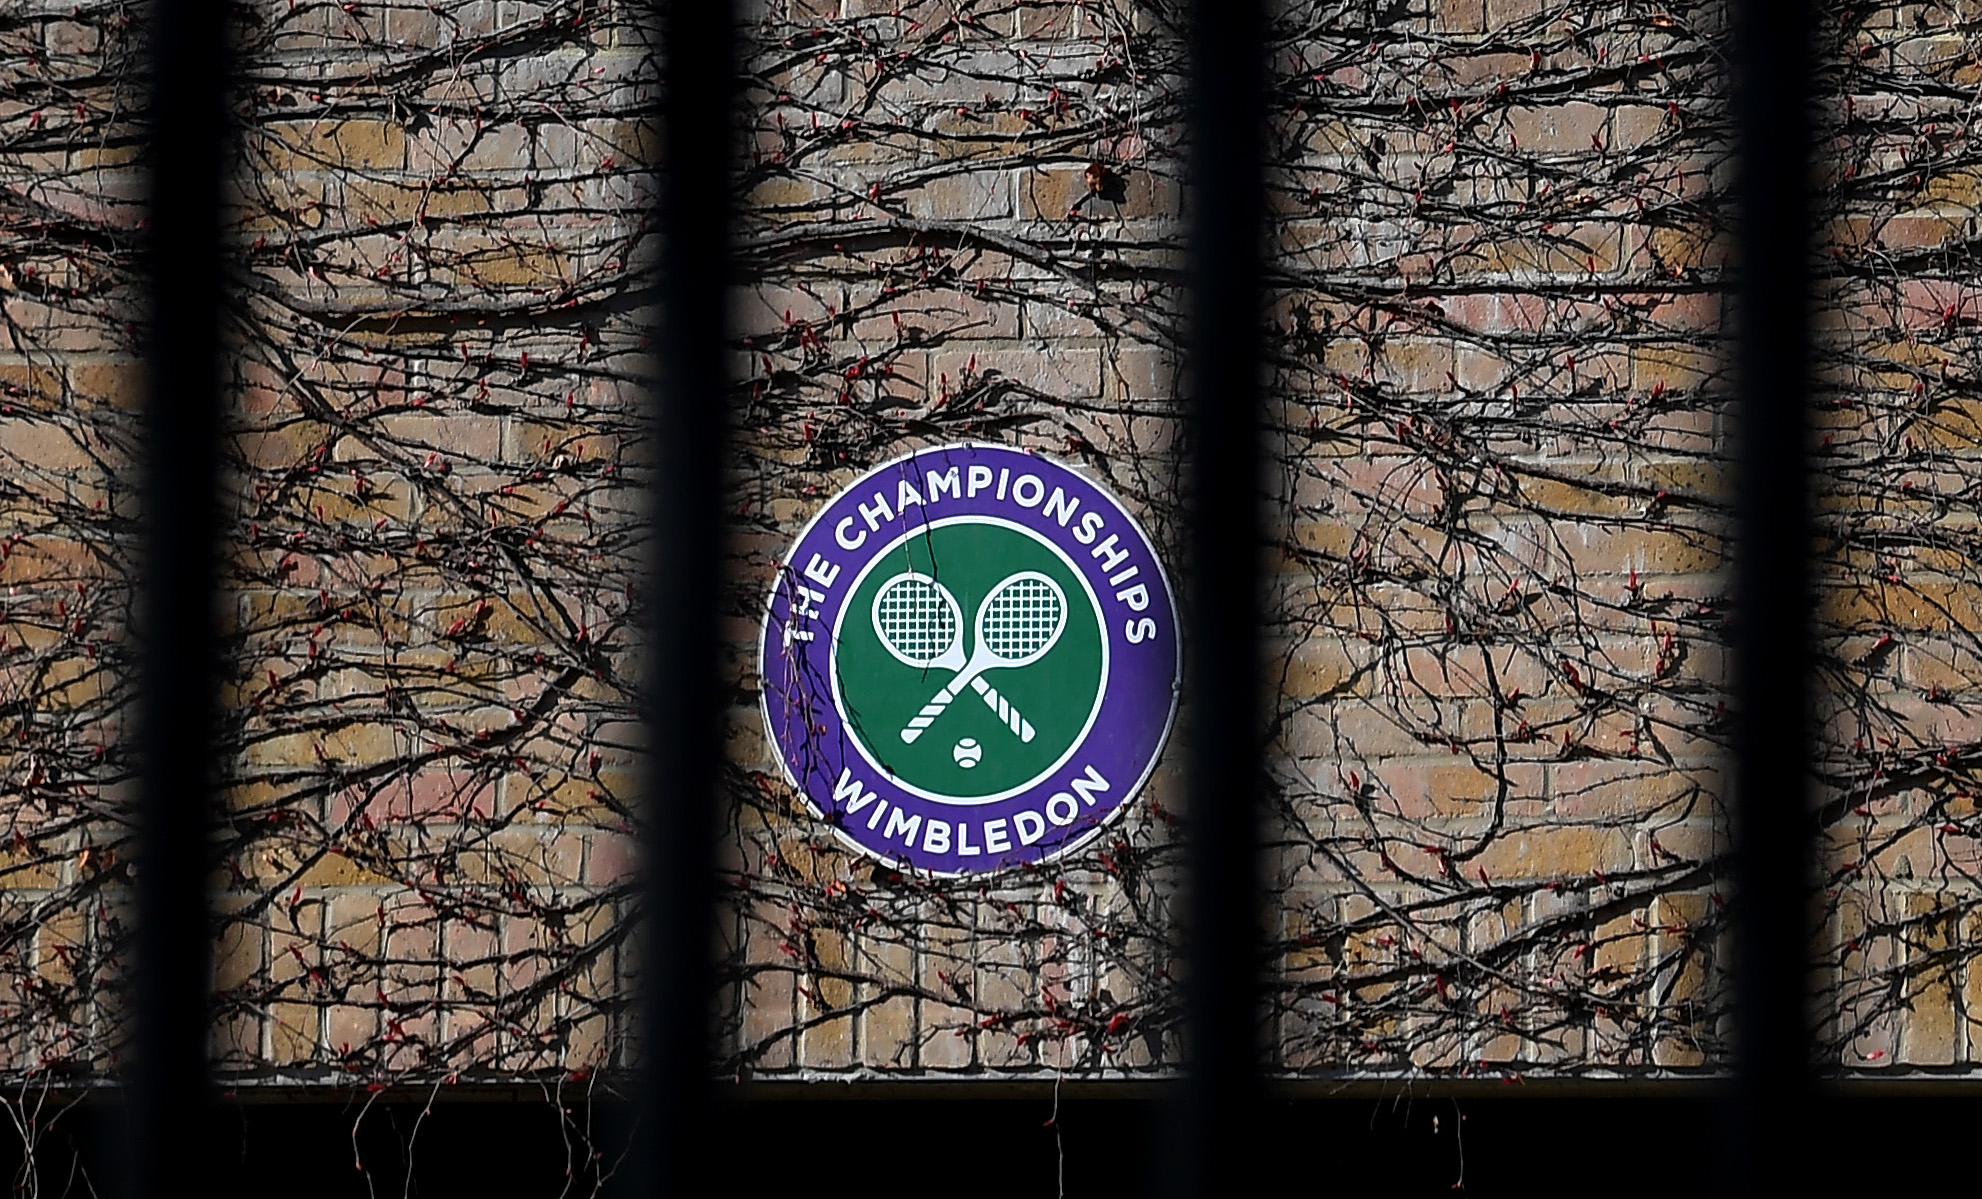 Wimbledon branding is seen at The All England Tennis and Croquet Club, best known as the venue for the Wimbledon Tennis Championships, on April 1, 2020 in London, England. (Alex Davidson/Getty Images)